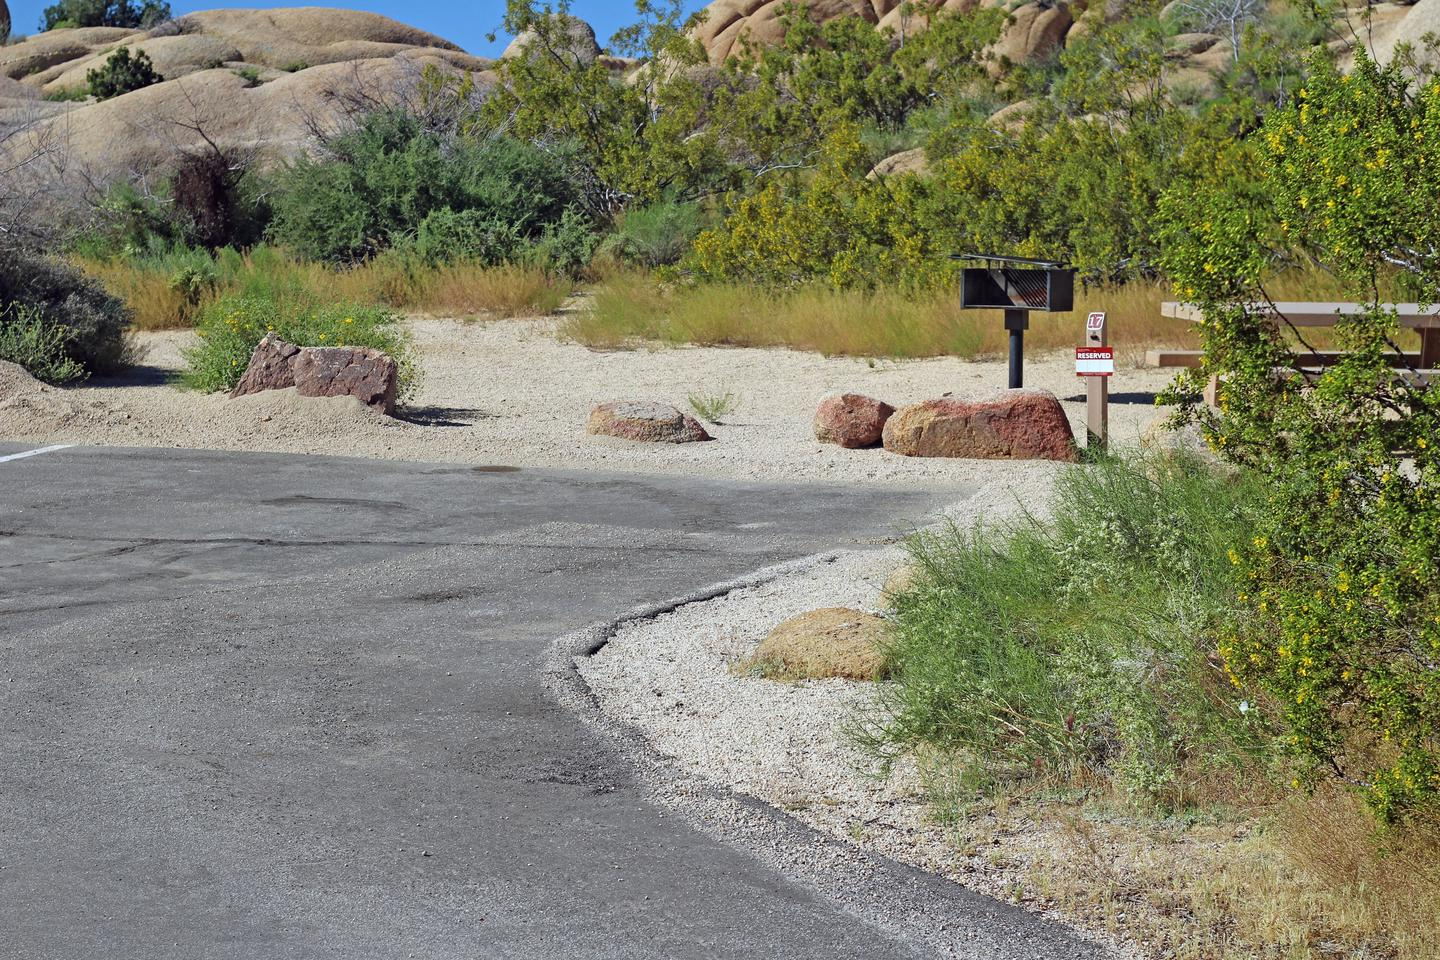 Parking for campsite